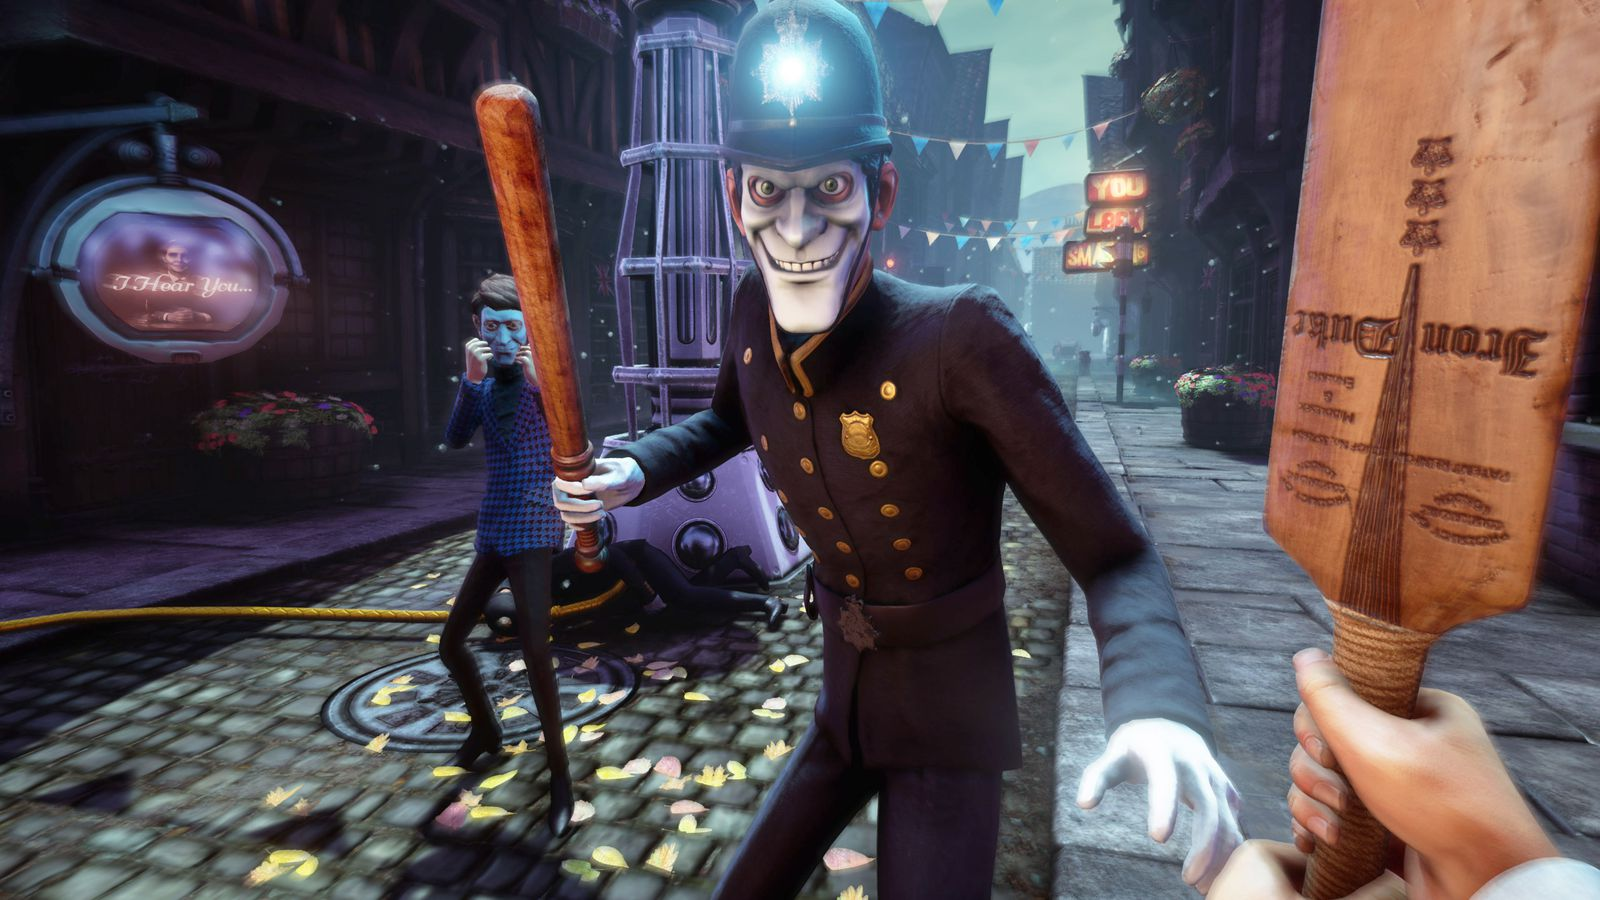 Windows Fall Wallpaper Drug Fueled Survival Game We Happy Few Hits Retail Next